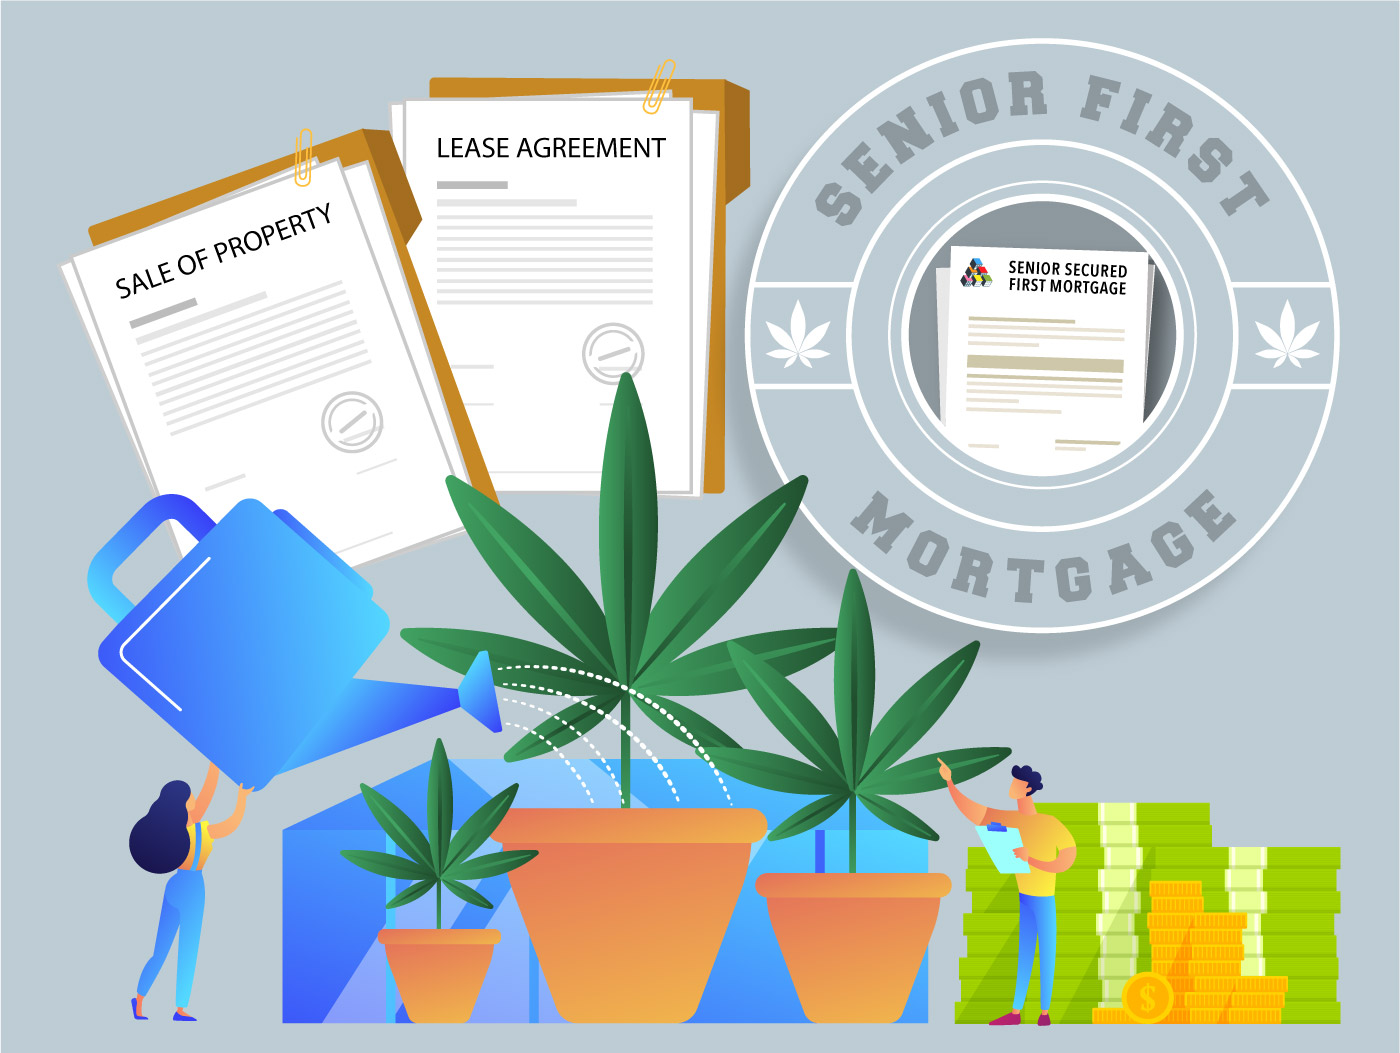 Image of Cannabis Growing with a Senior First Mortgage badge.